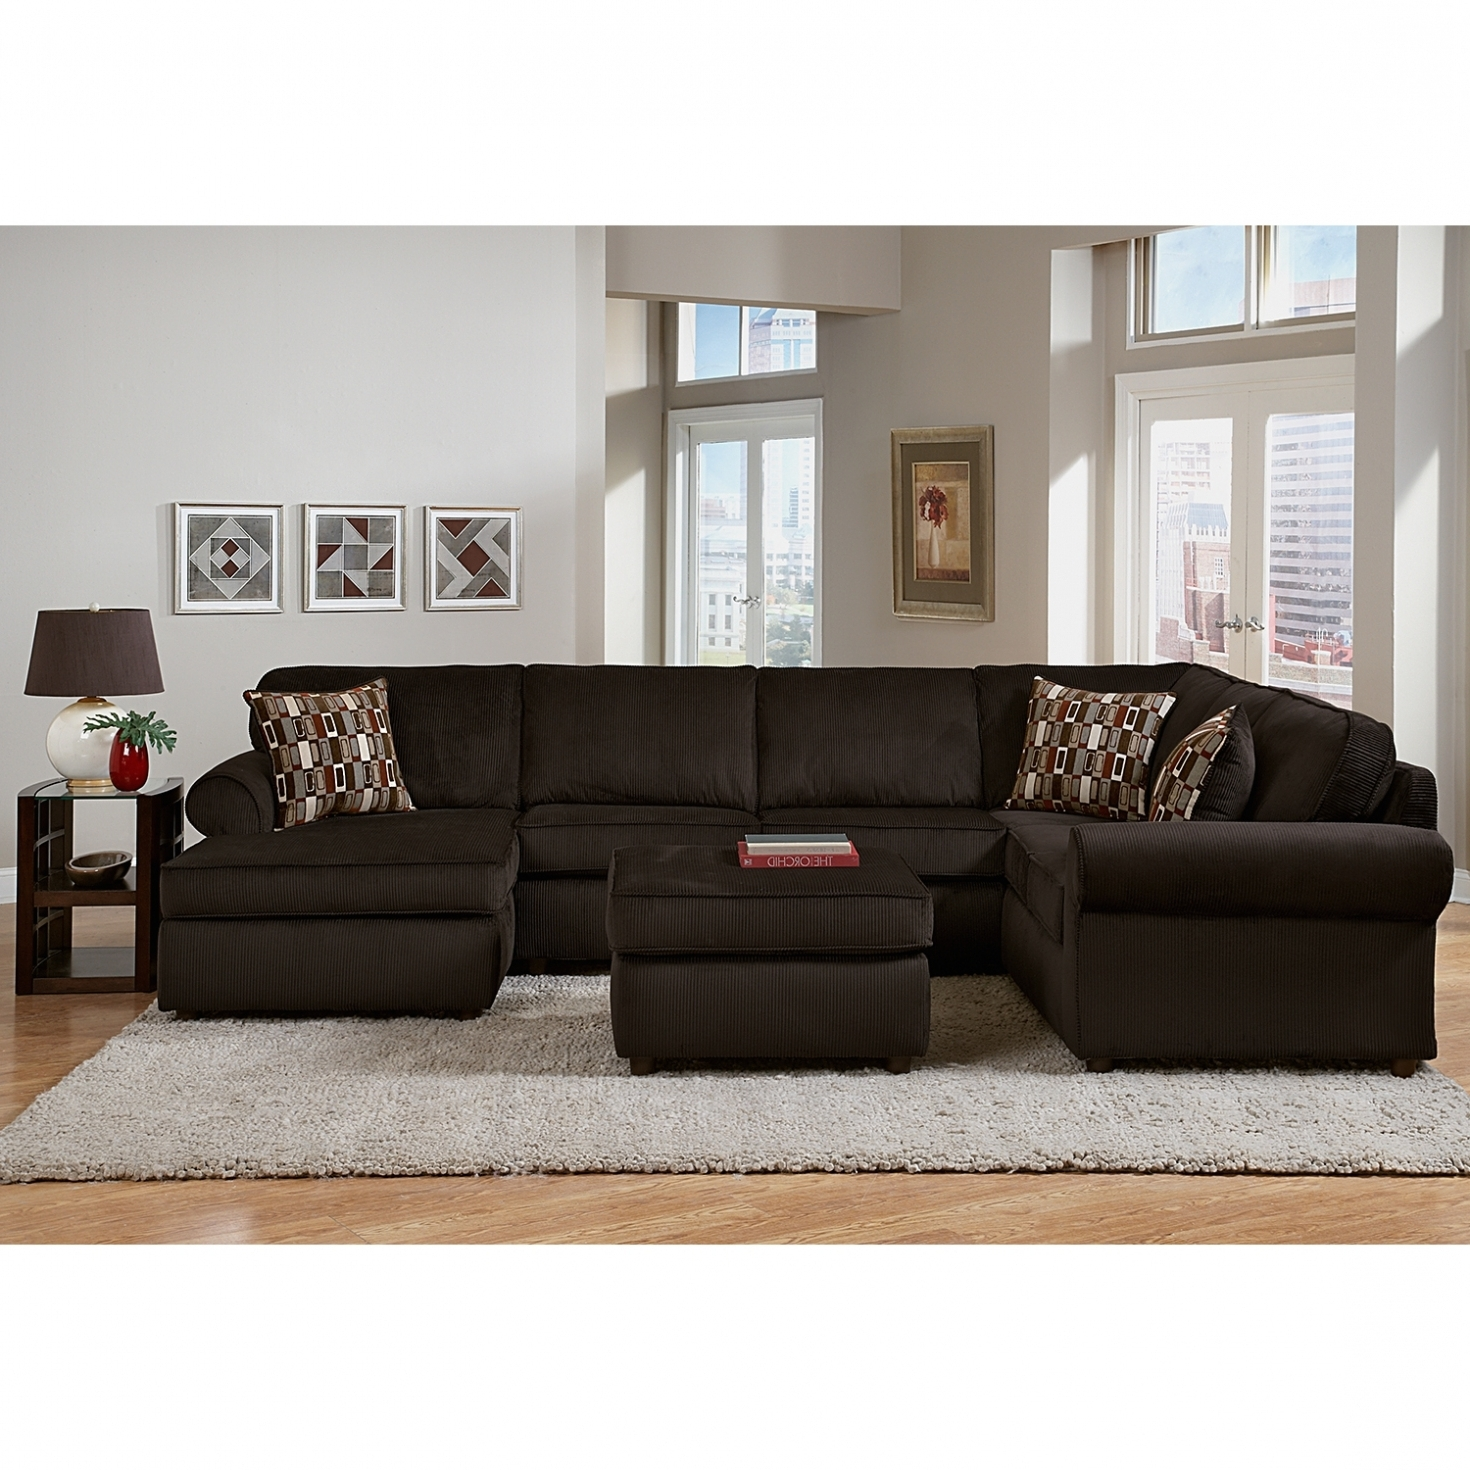 Current Furniture: New Value City Sectional Sofa 32 For Living Room Sofa Throughout Value City Sofas (View 5 of 20)